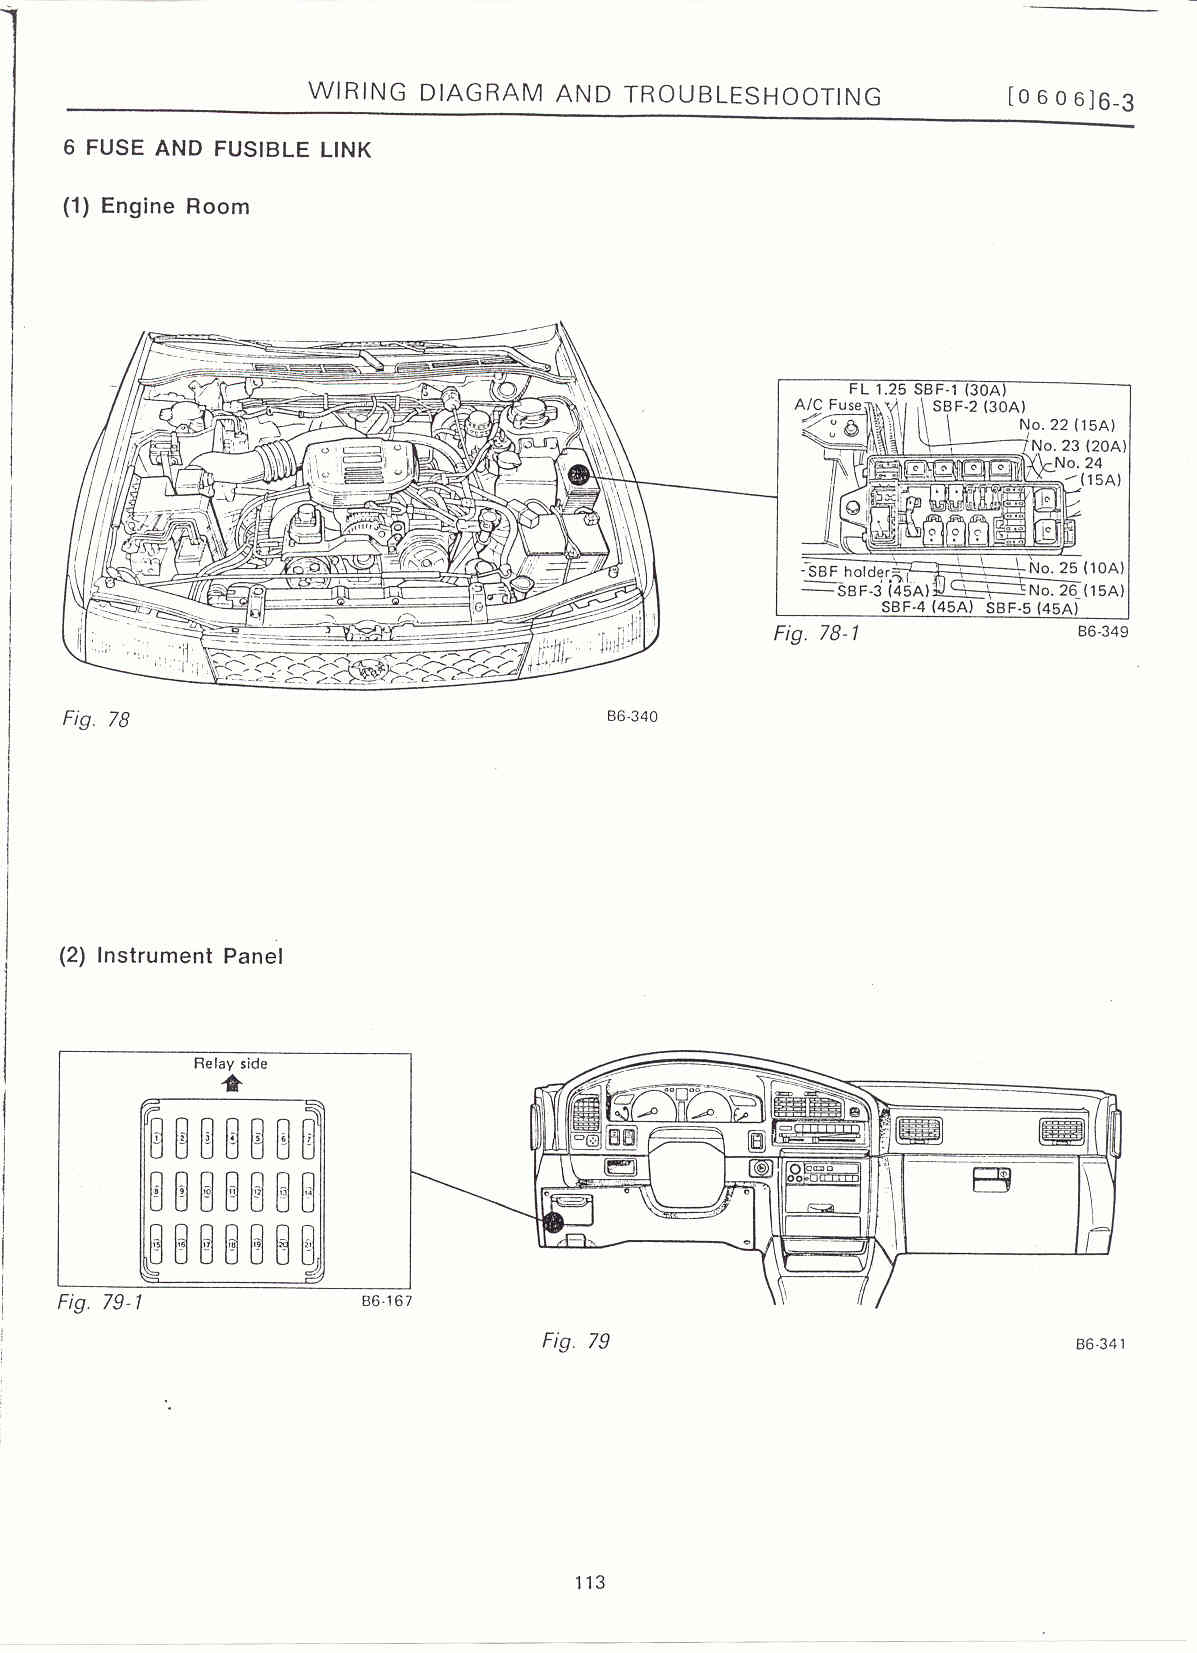 subaru outback engine room fuse box diy wiring diagrams \u2022 yellow subaru  baja production numbers